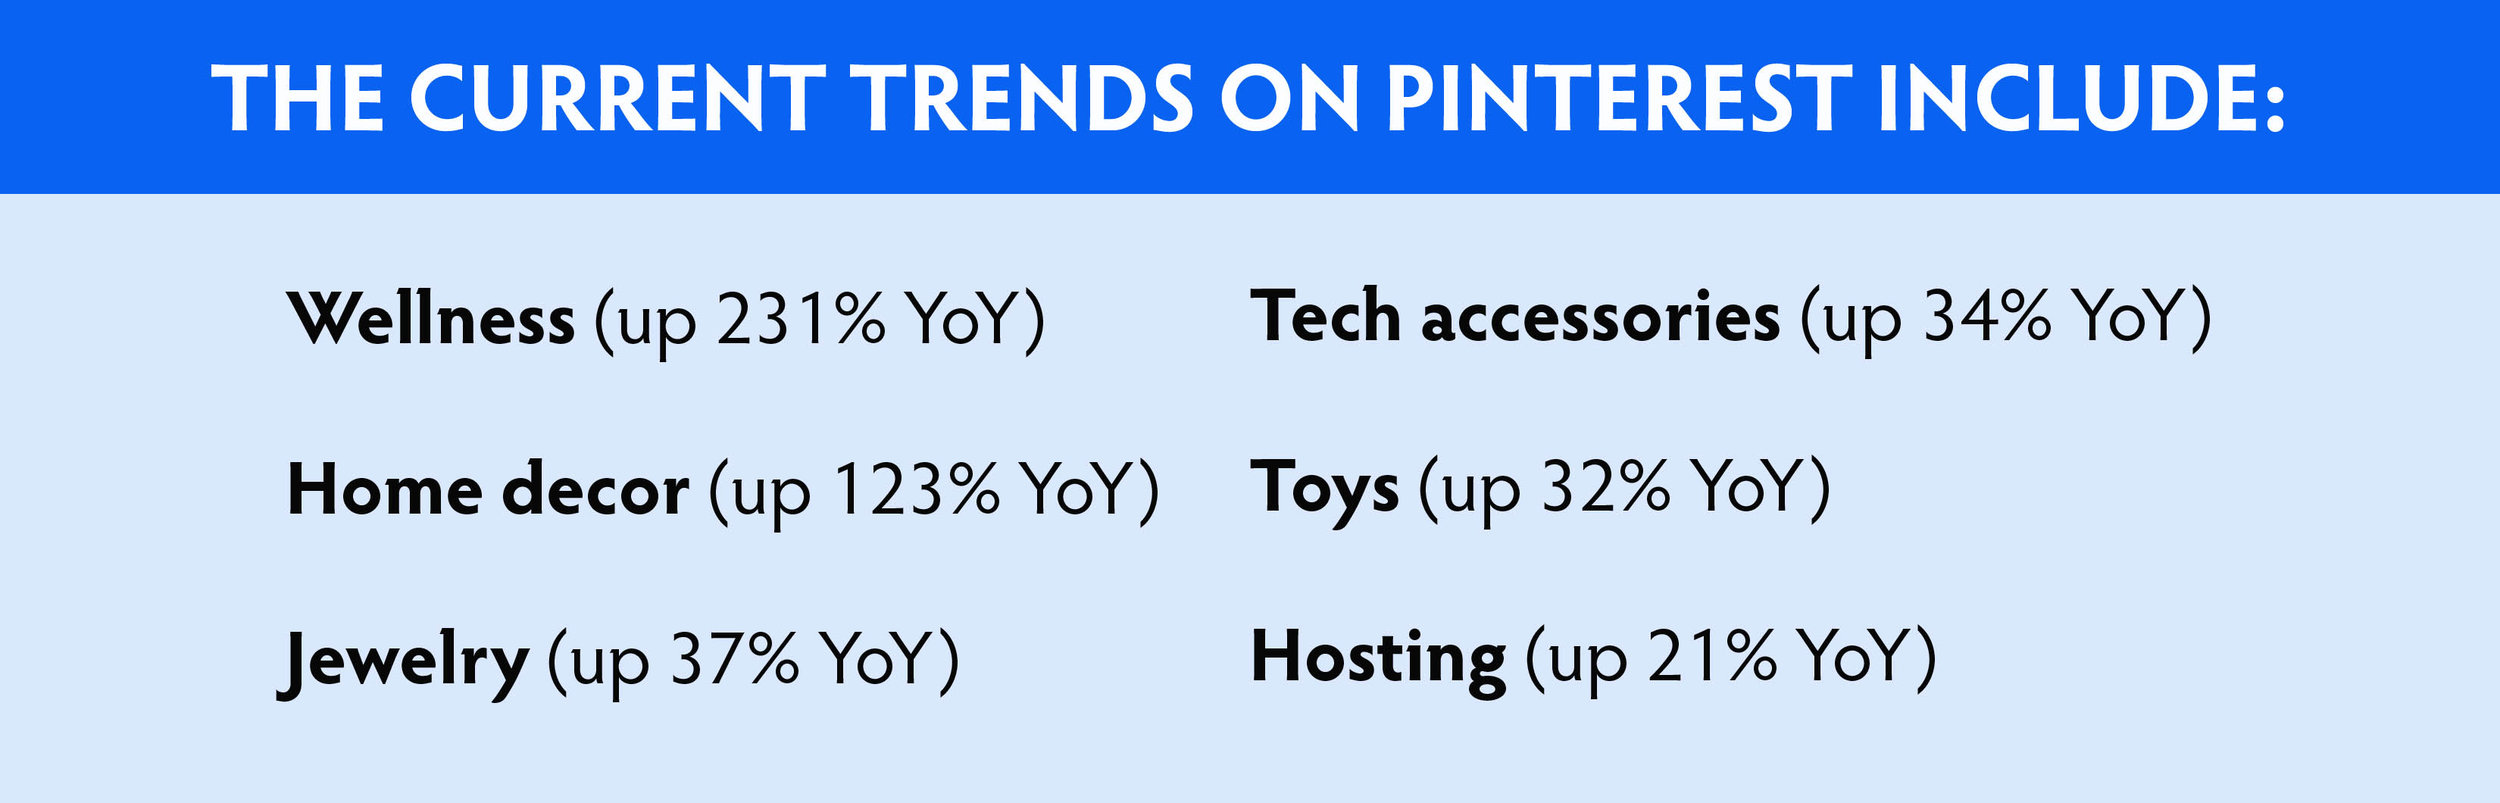 Current holiday trends that will drive sales on Pinterest include: Wellness, Home Decor, Jewelry, Tech Accessories, Toys and Hosting. #pinteresttips #pintereststrategies